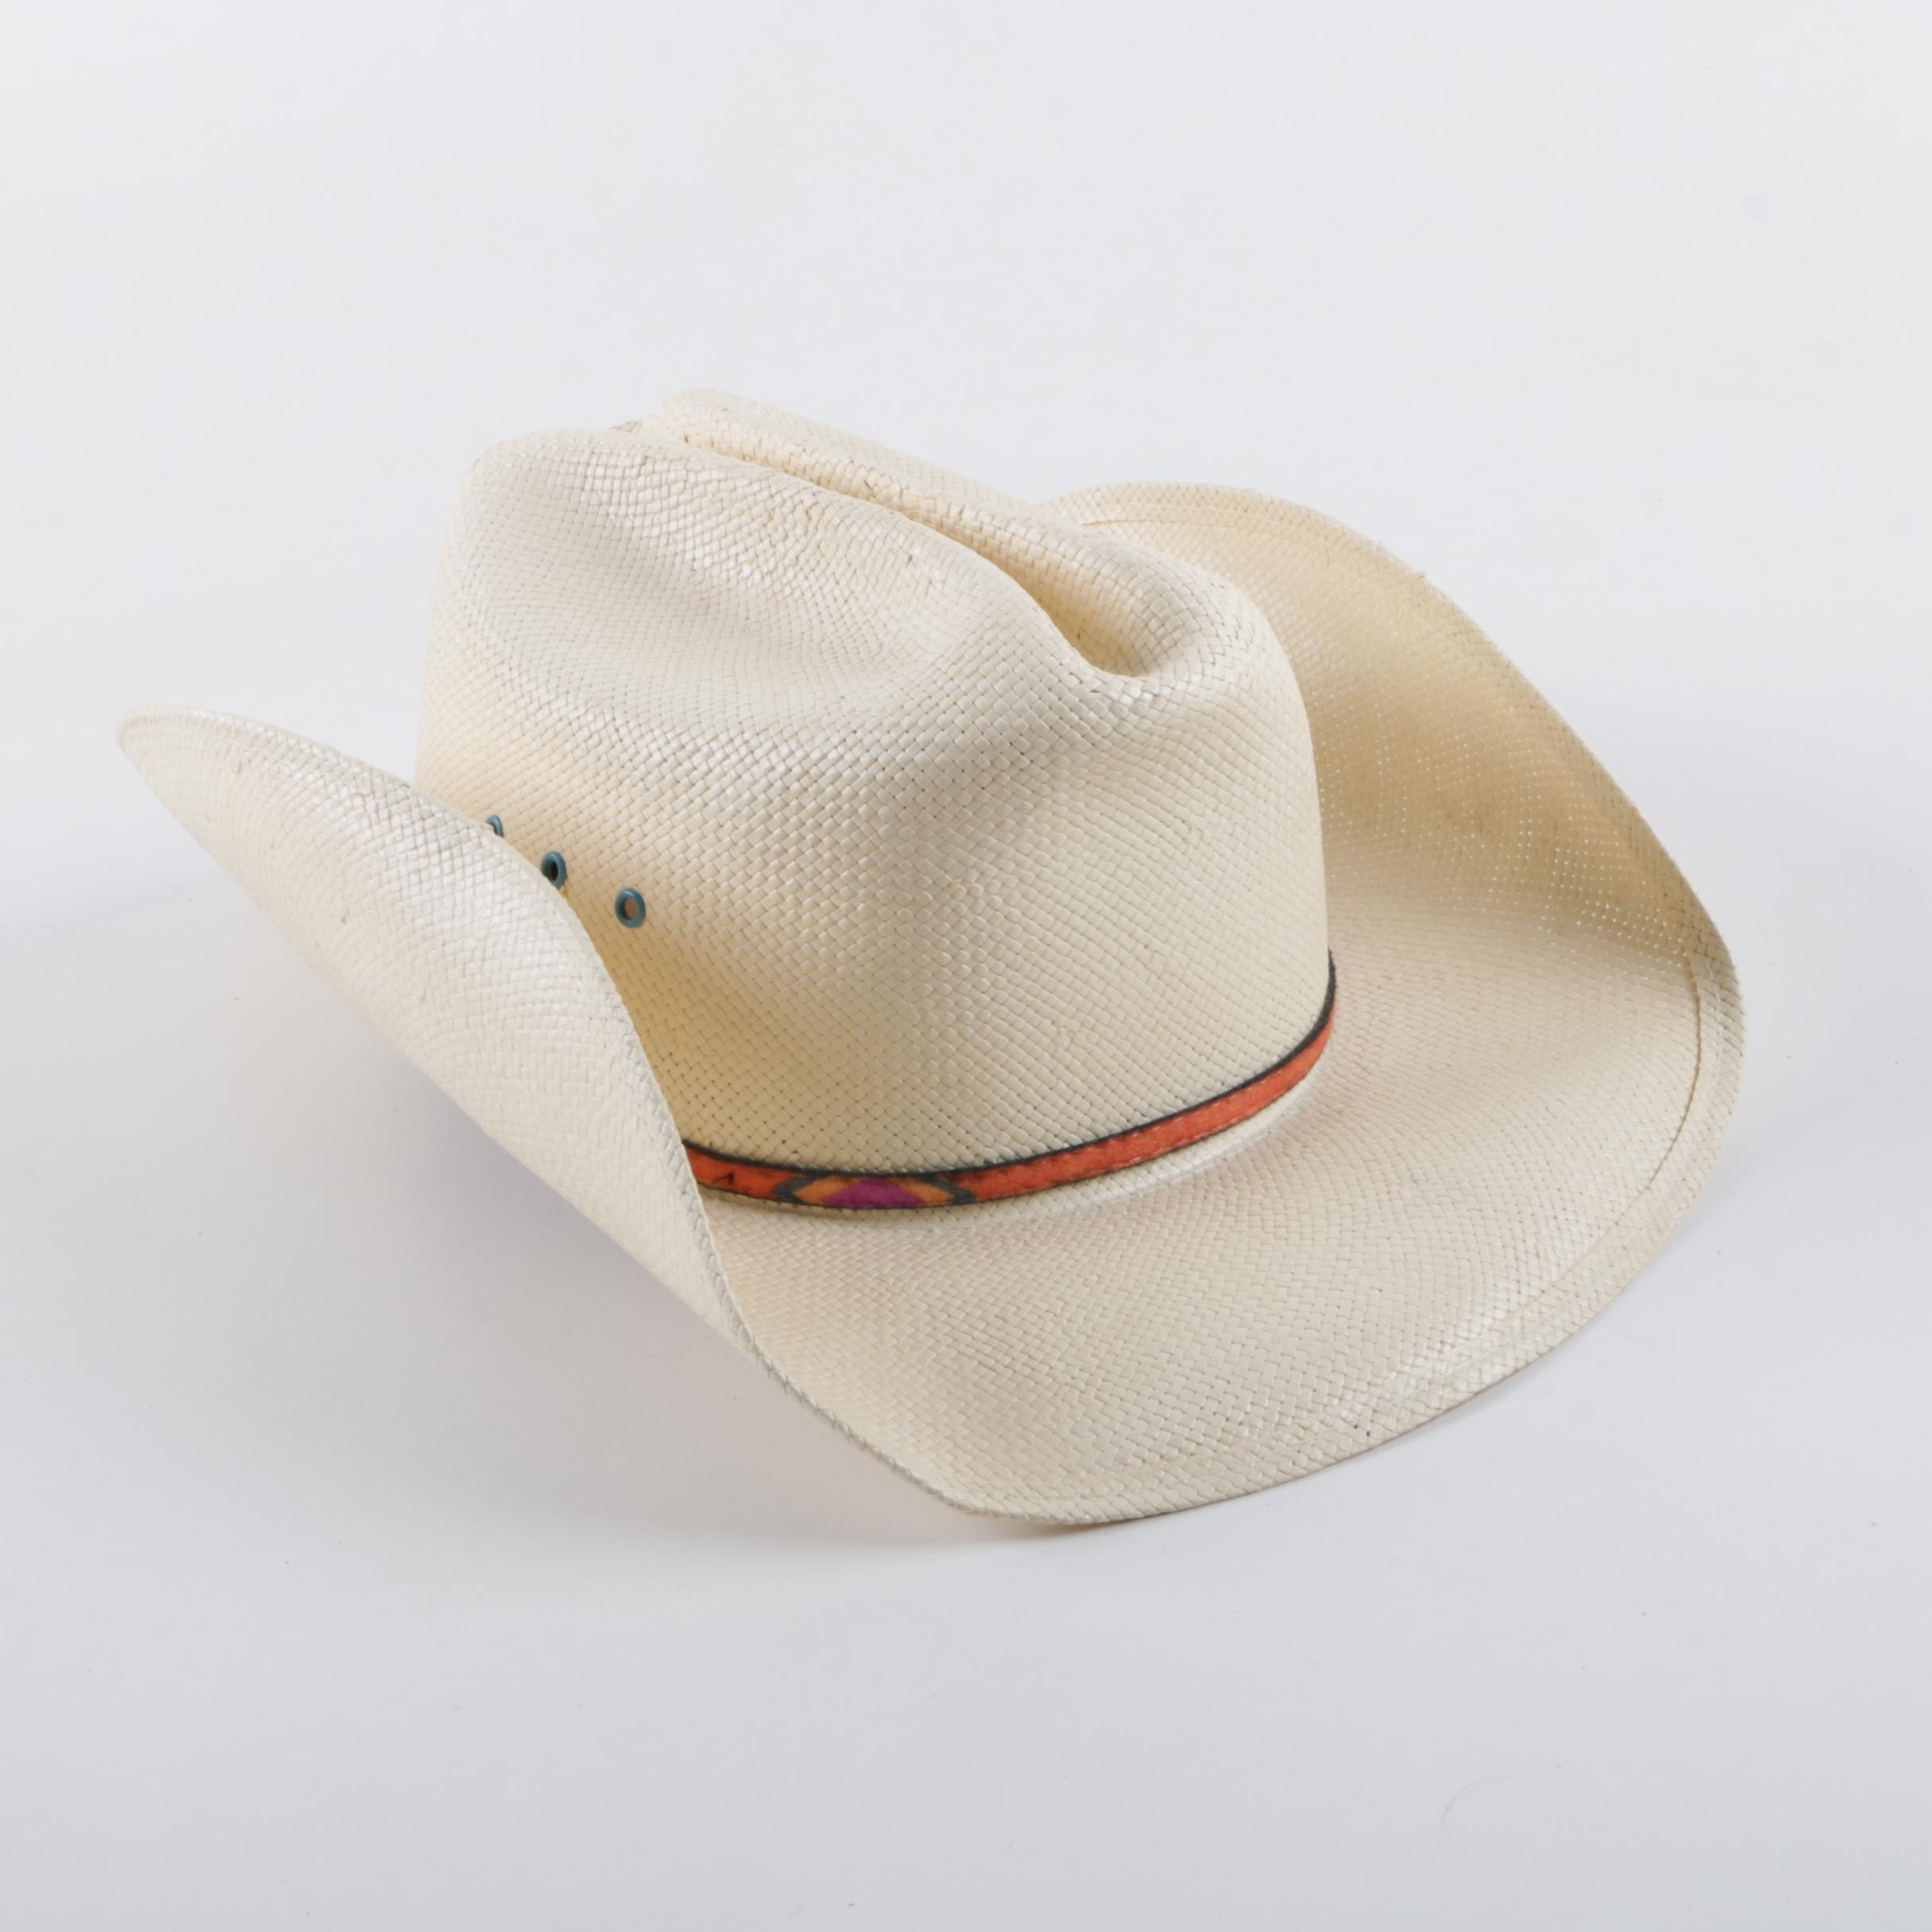 Tammy Cochran Signed Cowboy Hat by Parrot Hat Shop